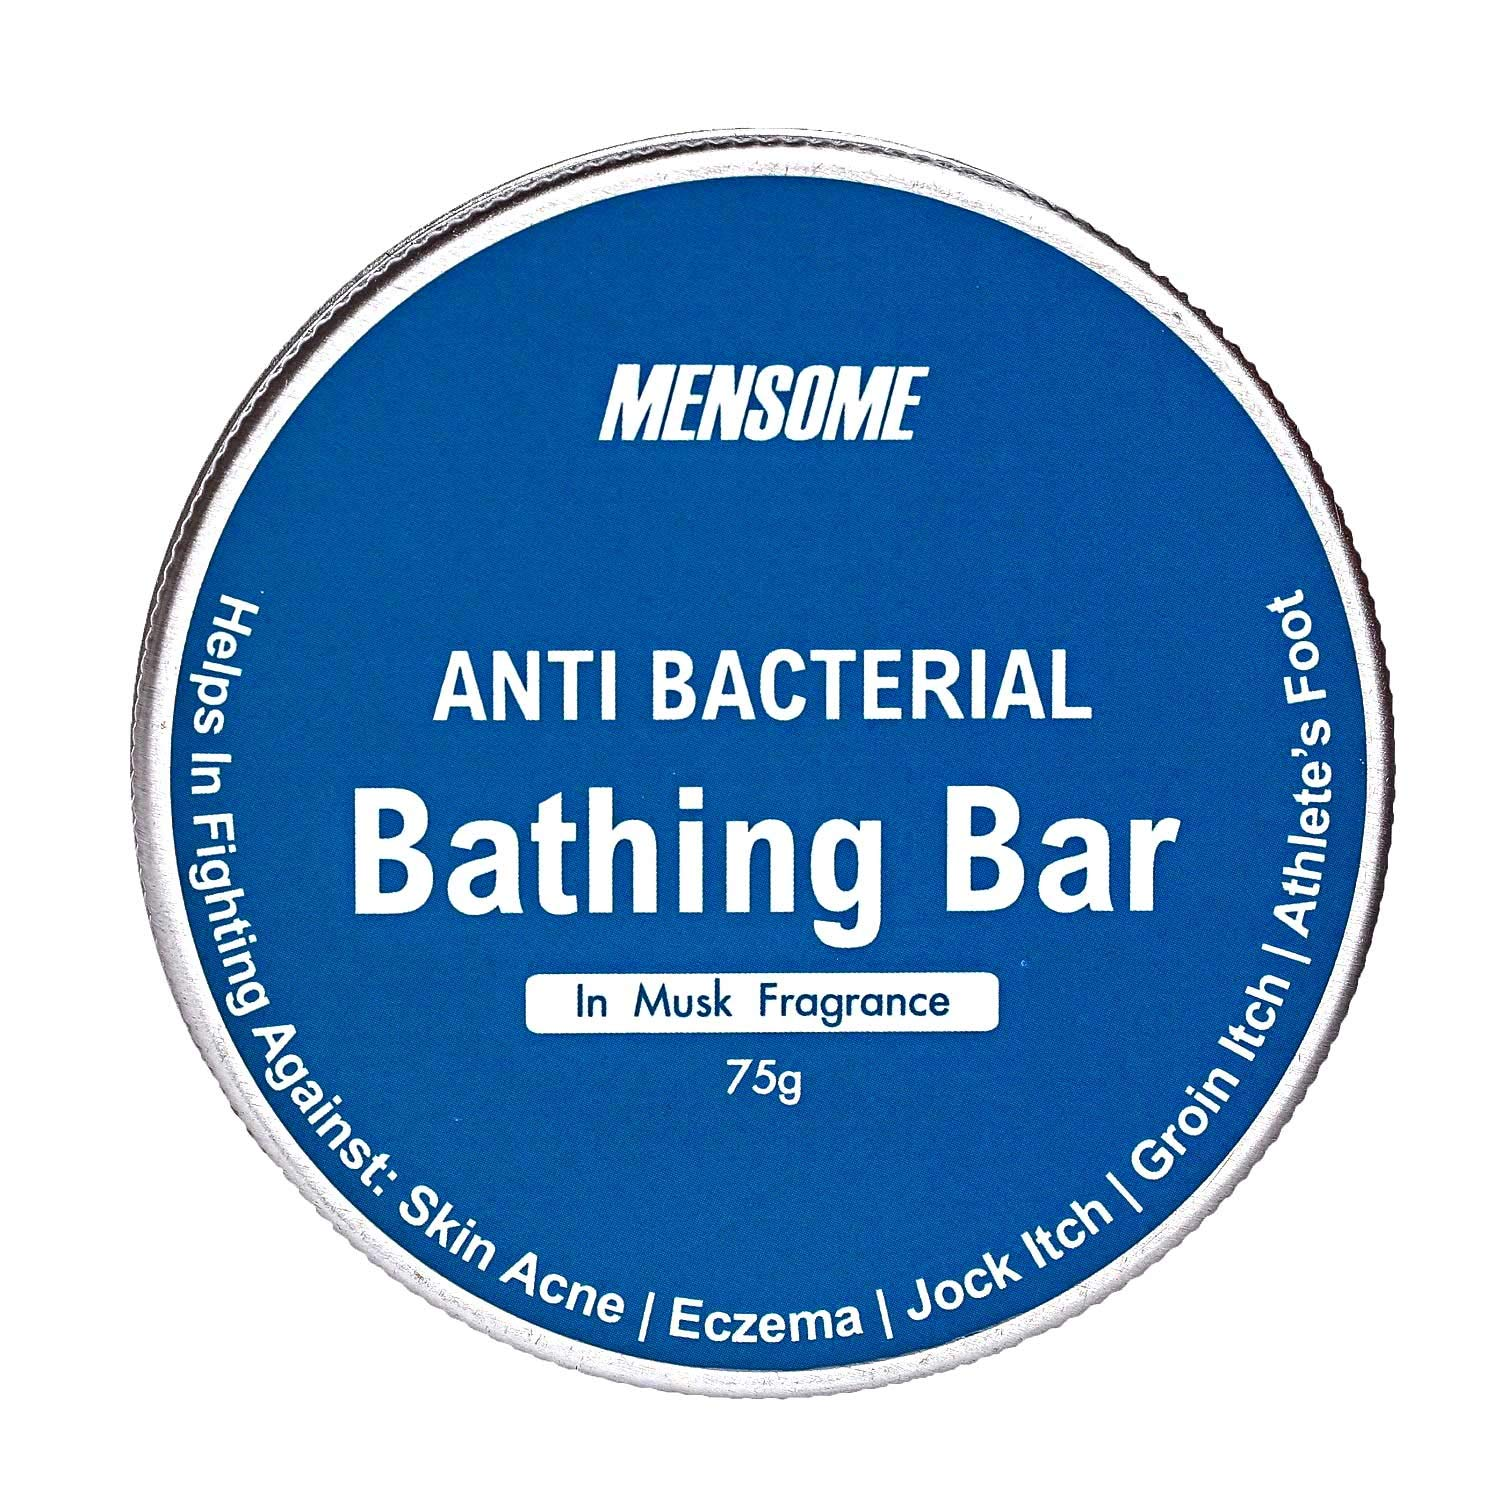 MENSOME Anti Bacterial Bathing Soap Bar Helps in fighting Skin Infections, Acne, Itching and made up of natural oils and herbs in Pack of 3(Musk Fragrance)